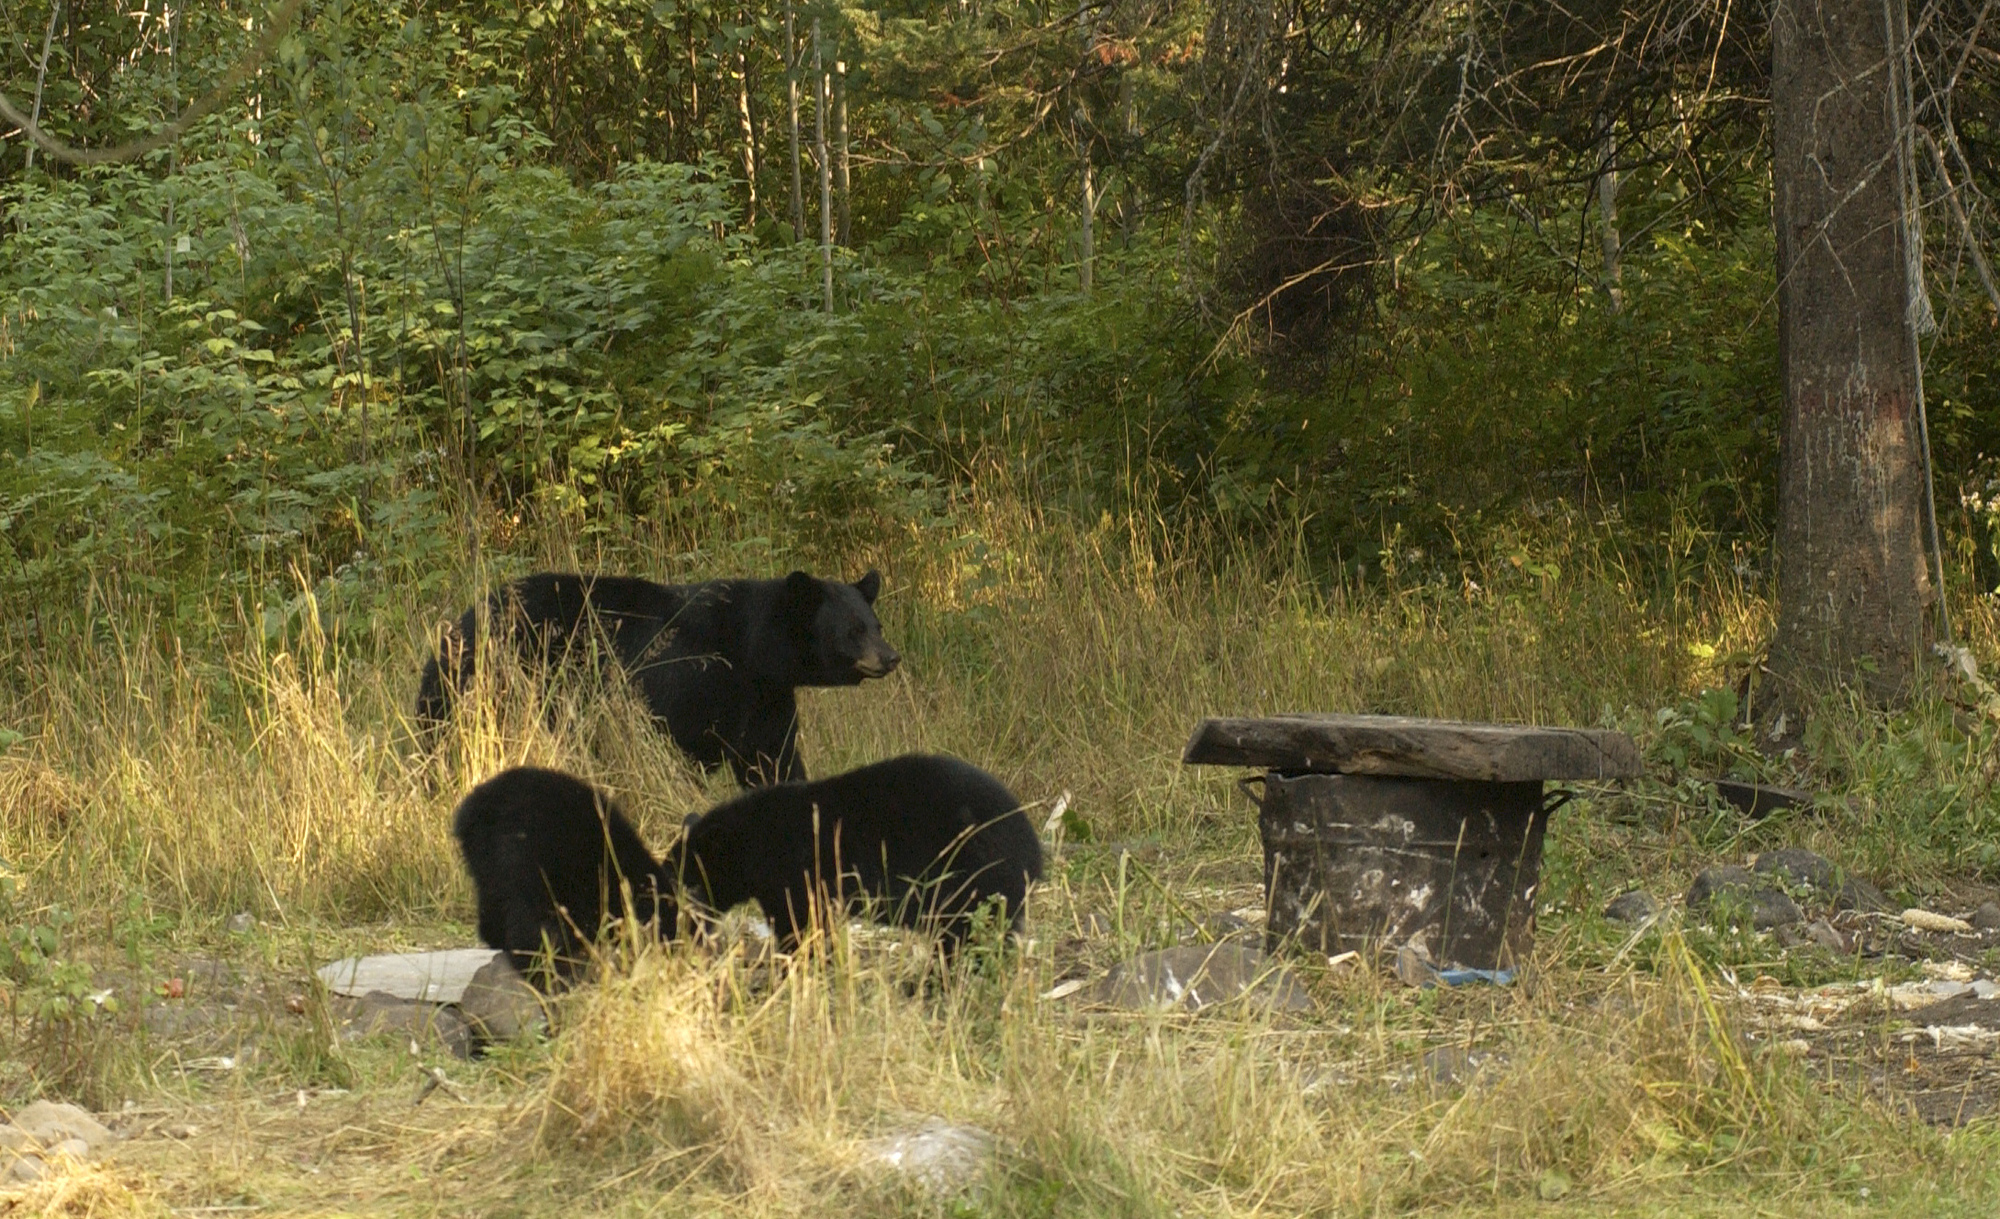 A sow and two black bear cubs investigate a grassy area where garbage has been left.